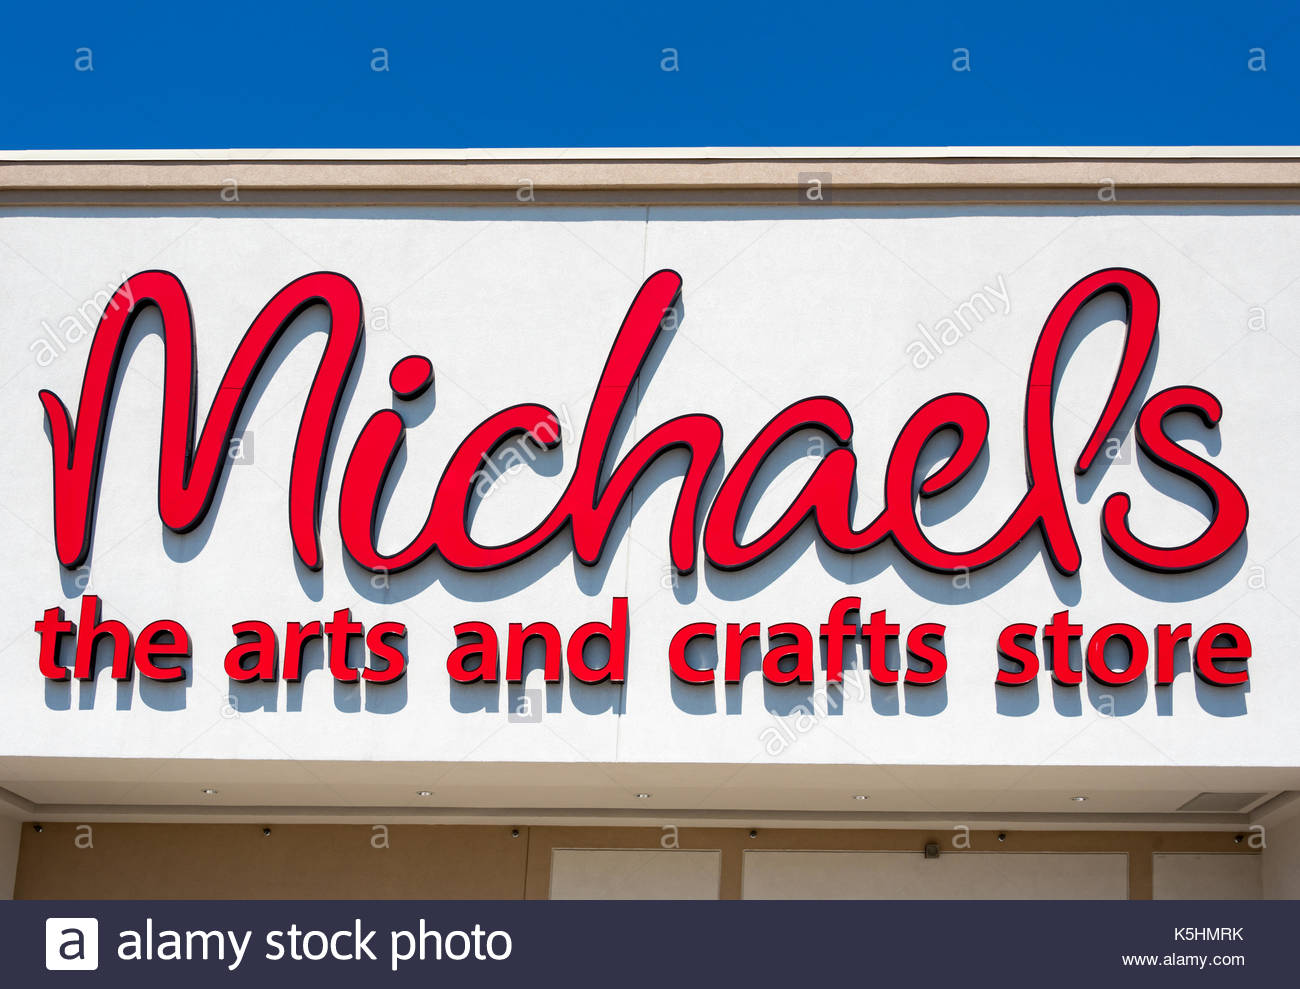 Michaels Art Store Entrance Is A North American Arts And Crafts Retail Chain Known